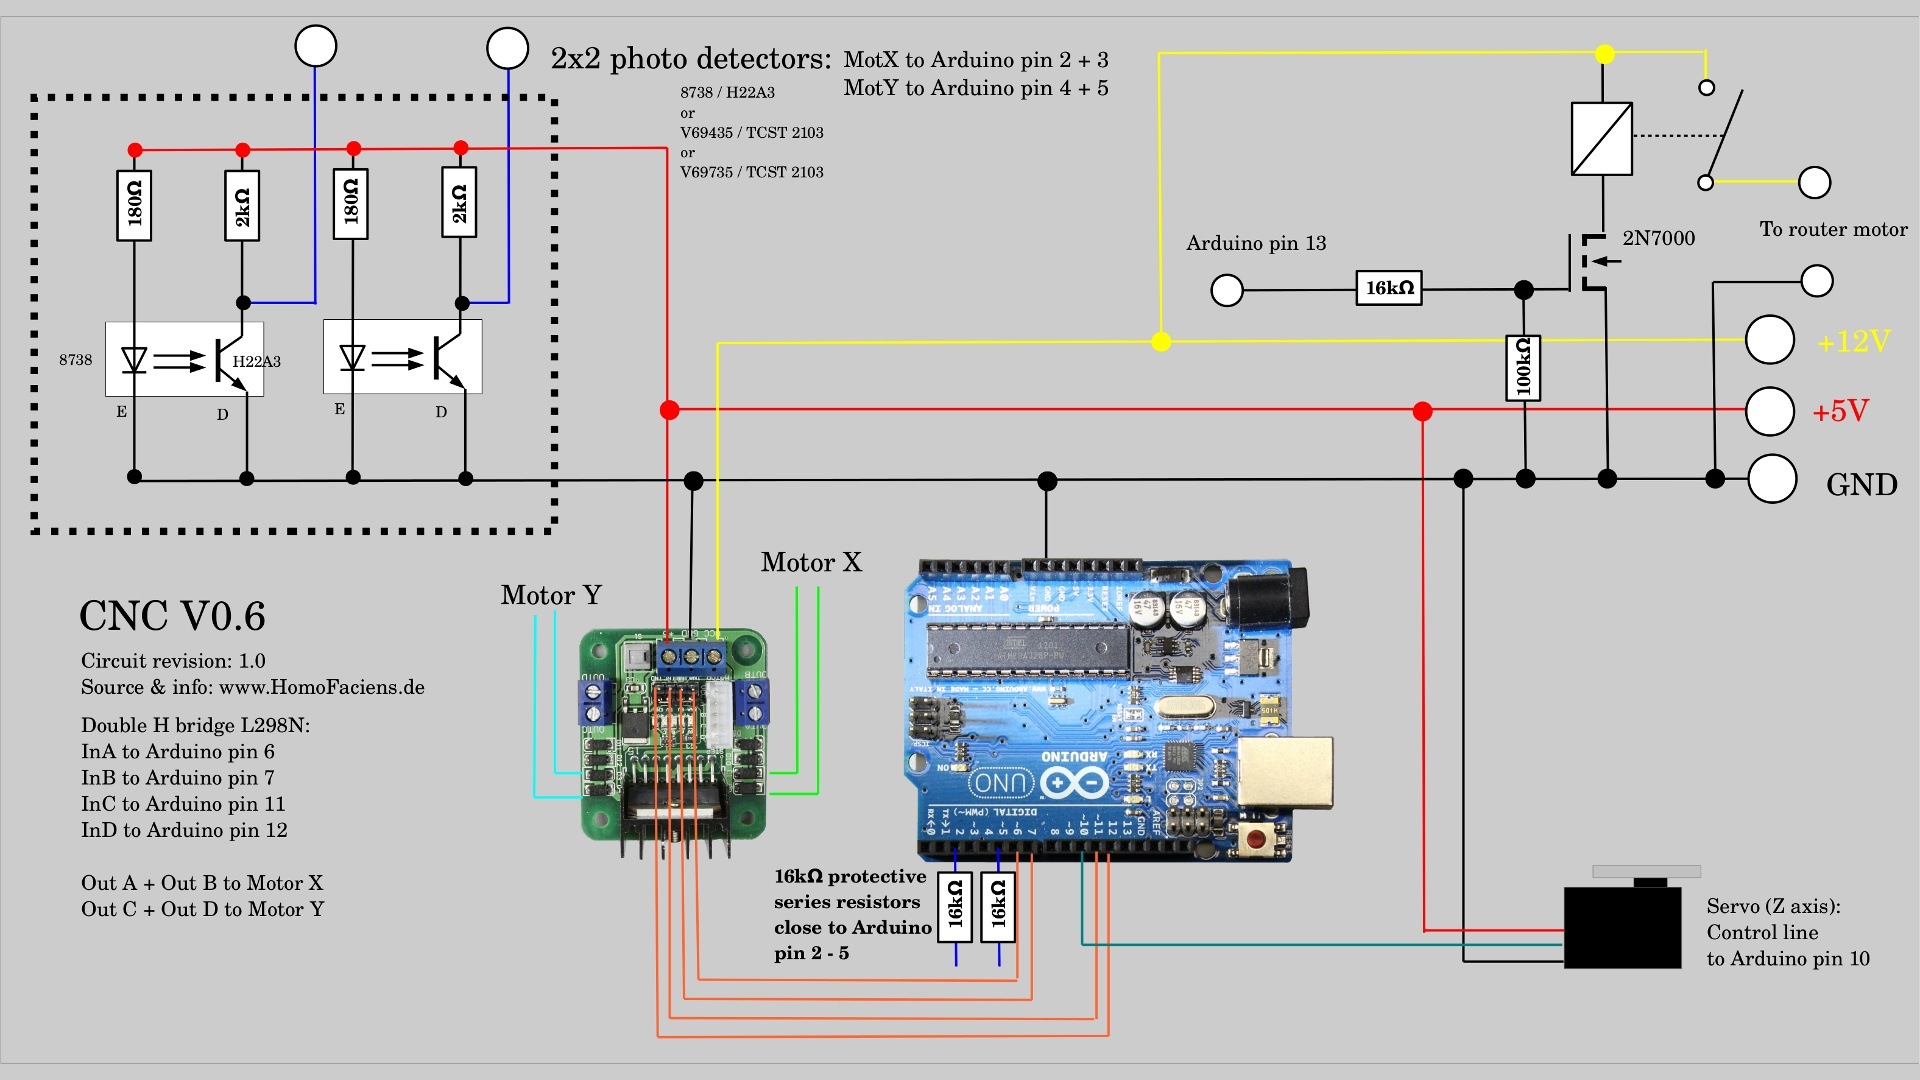 318489004877641820 on arduino wiring